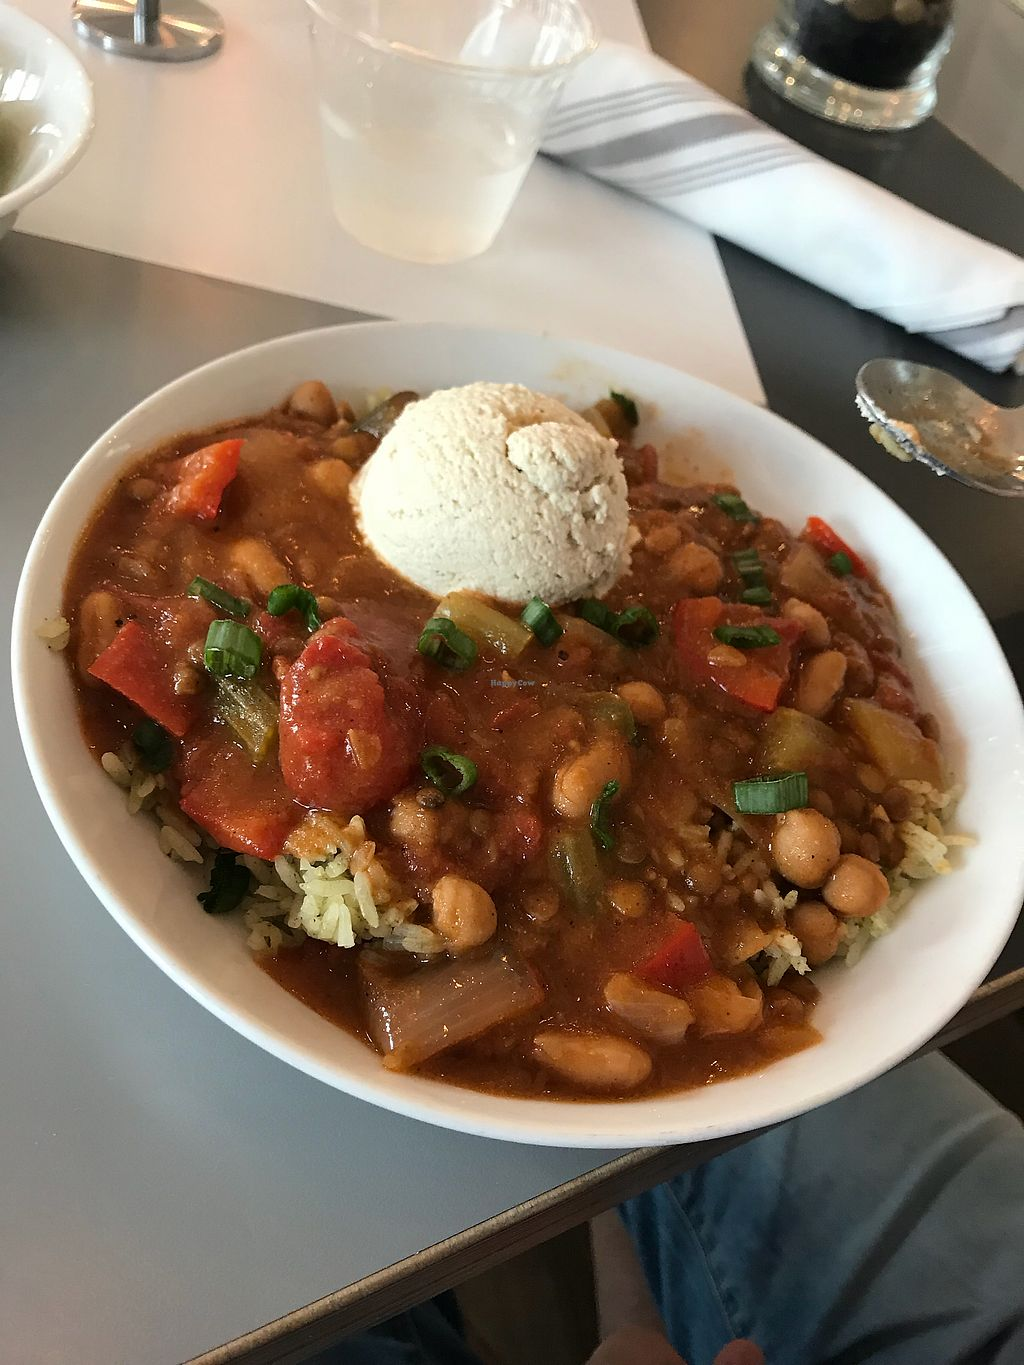 """Photo of Dirt Eat Clean  by <a href=""""/members/profile/SilviaGutierrez"""">SilviaGutierrez</a> <br/>Bowl with but cheese  <br/> October 19, 2017  - <a href='/contact/abuse/image/67410/316737'>Report</a>"""